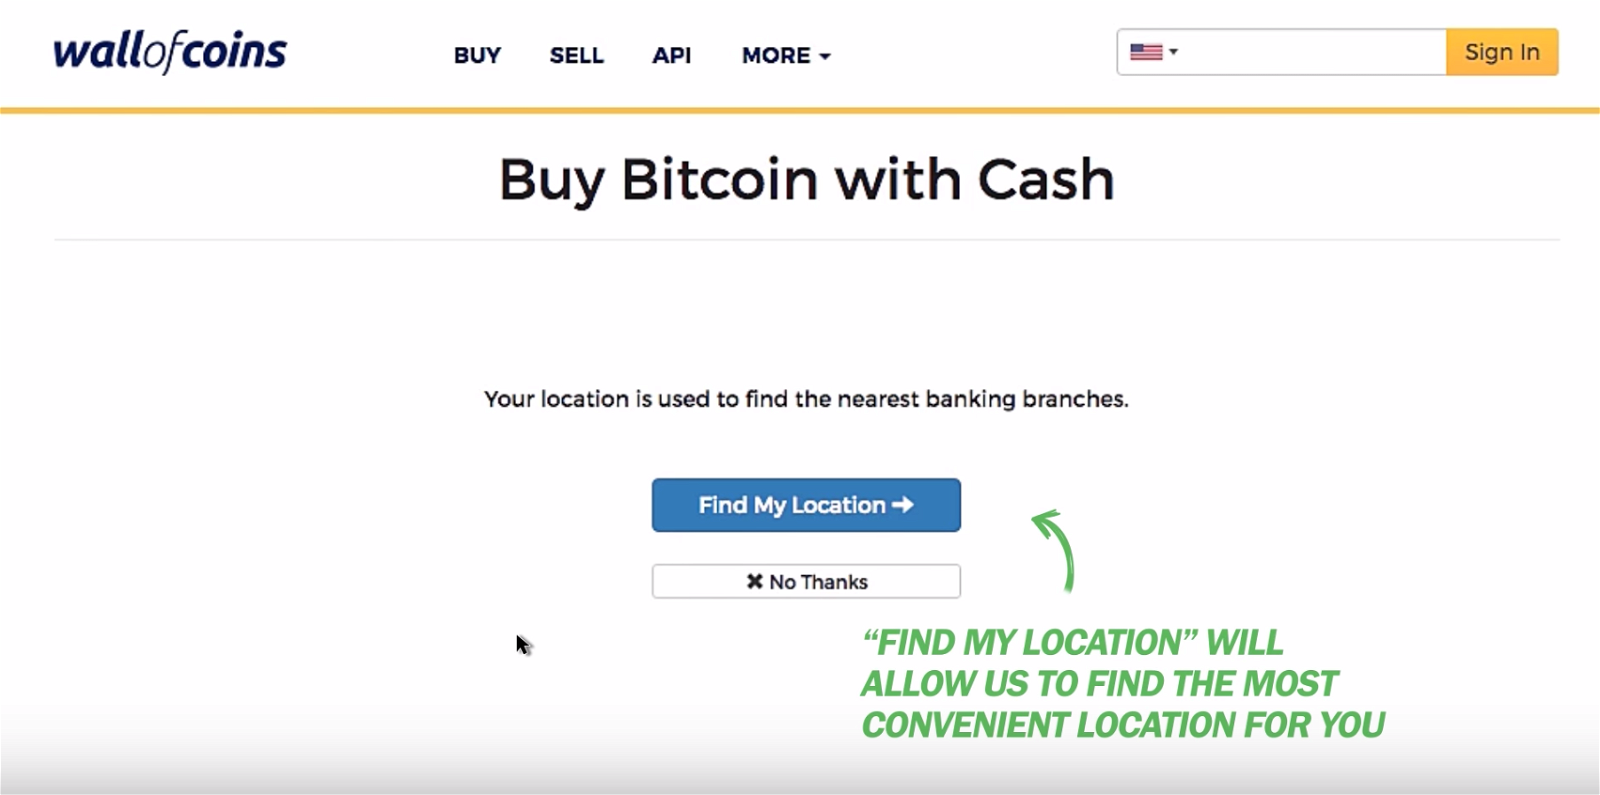 1631490553_644_How-to-Buy-Bitcoin-with-Cash